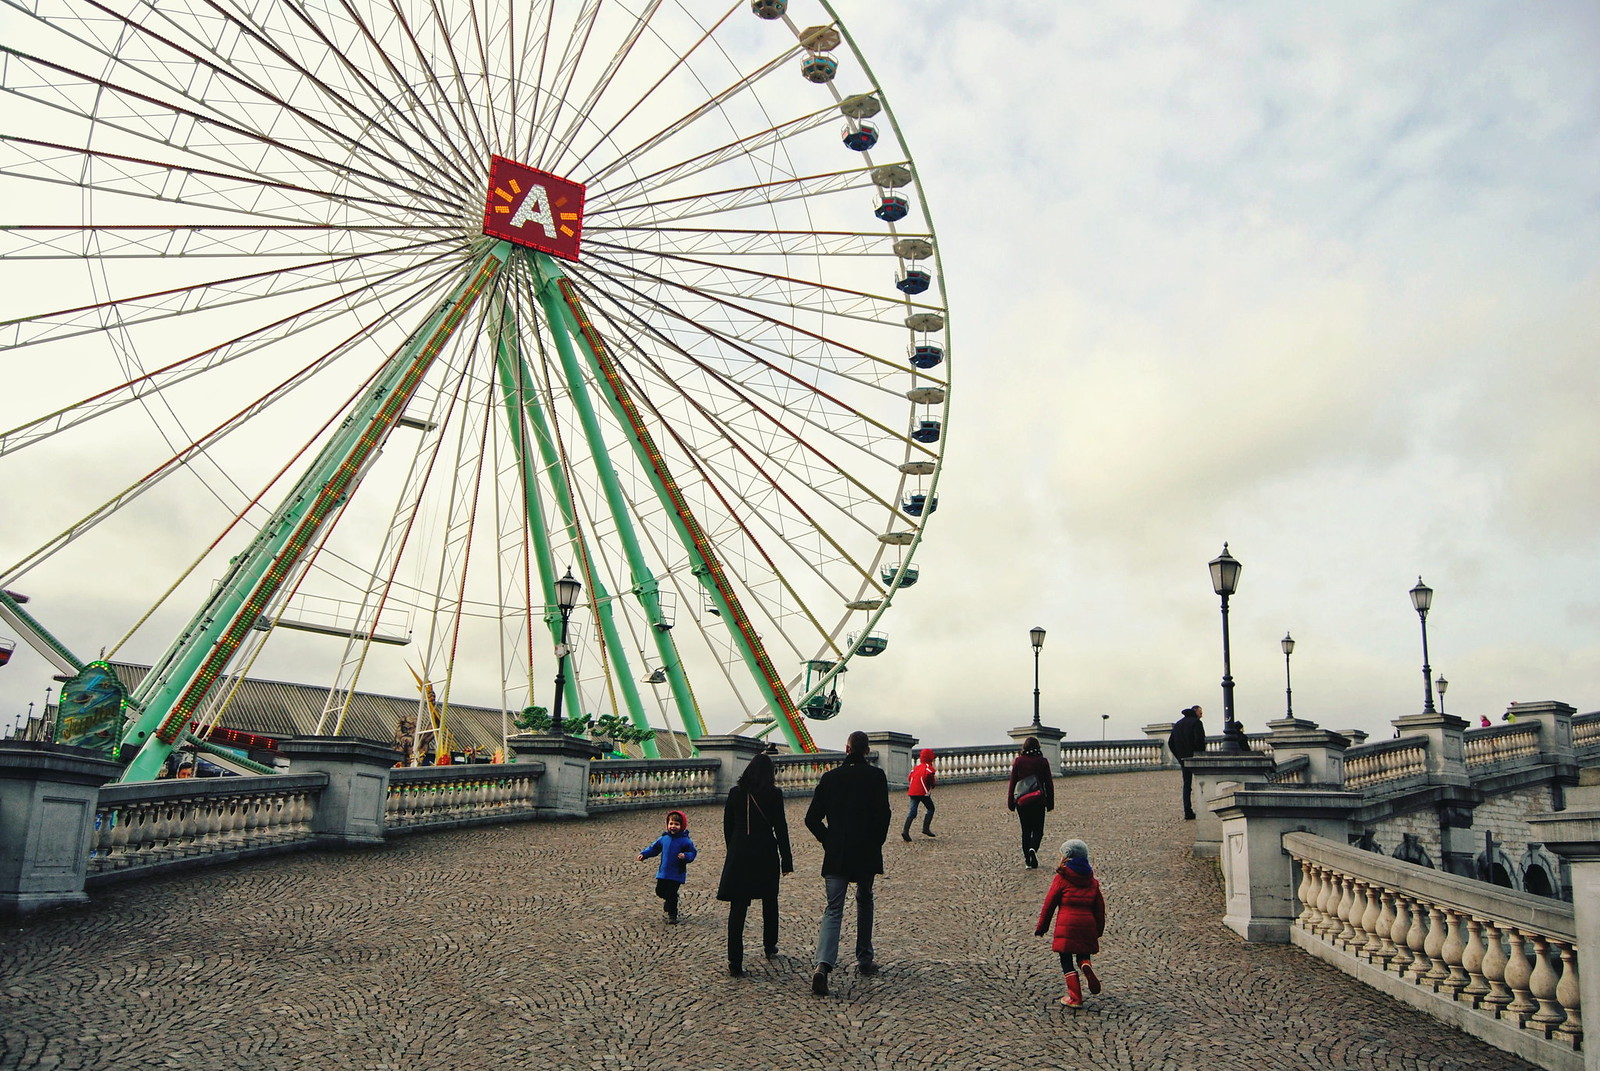 Things to do in Antwerp: ride the famous Ferris wheel.